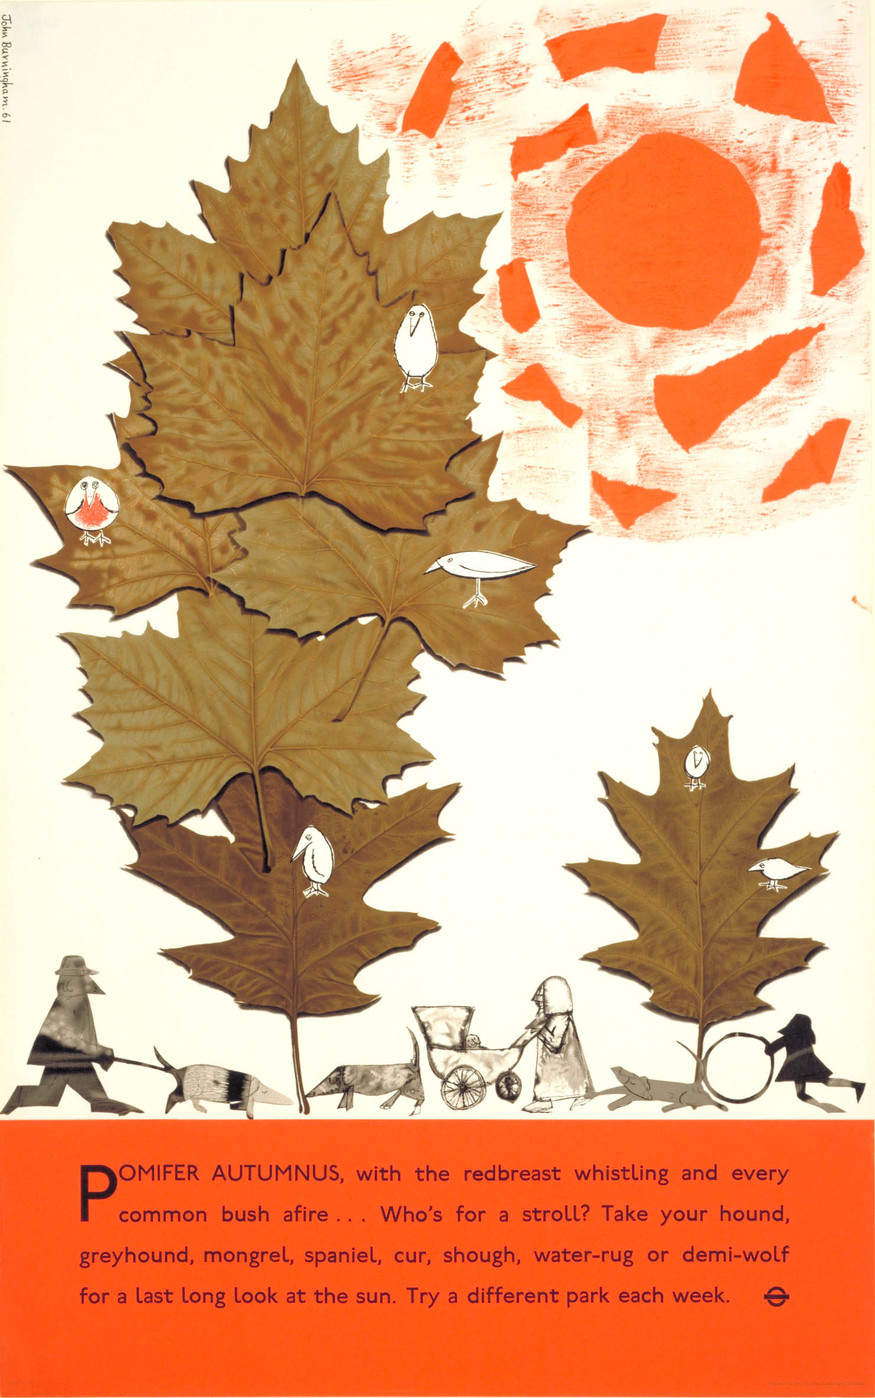 London parks, autumn leaves, by John Burningham, 1961